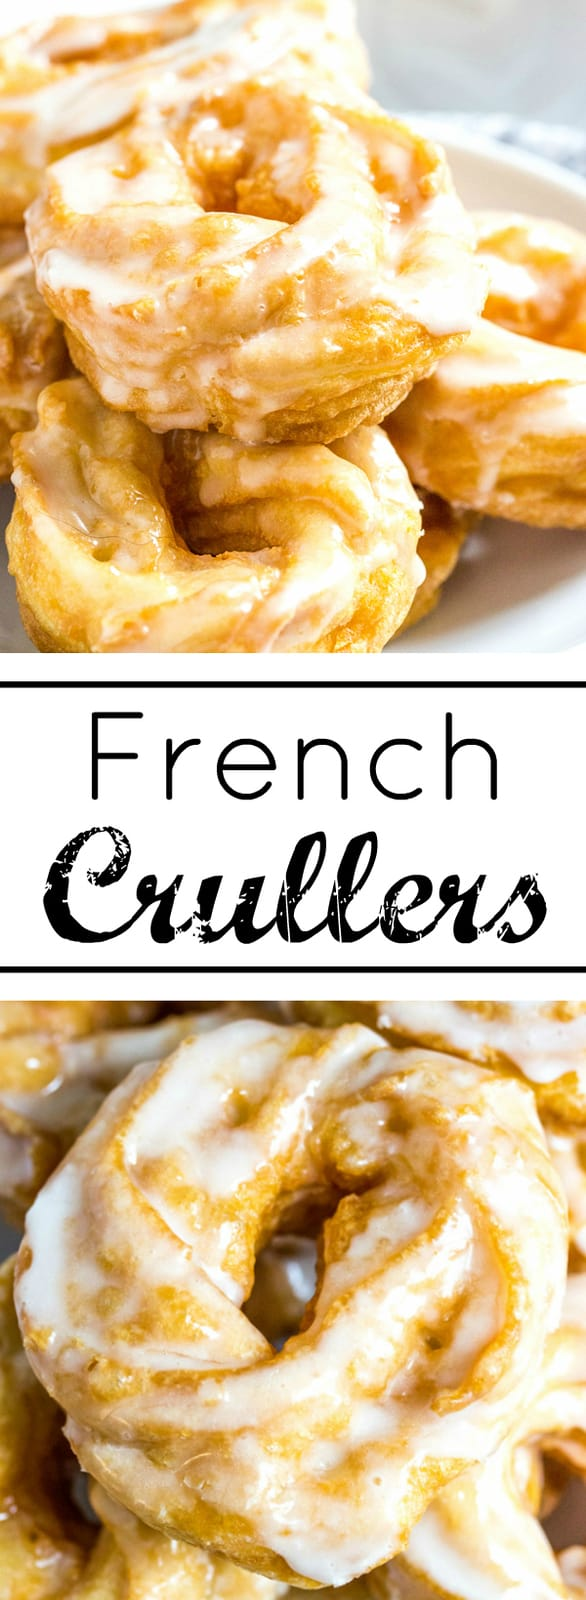 Switch up your morning routine with these delicious French Crullers. A puffy and moist pastry is dipped in a honey sugar glaze.